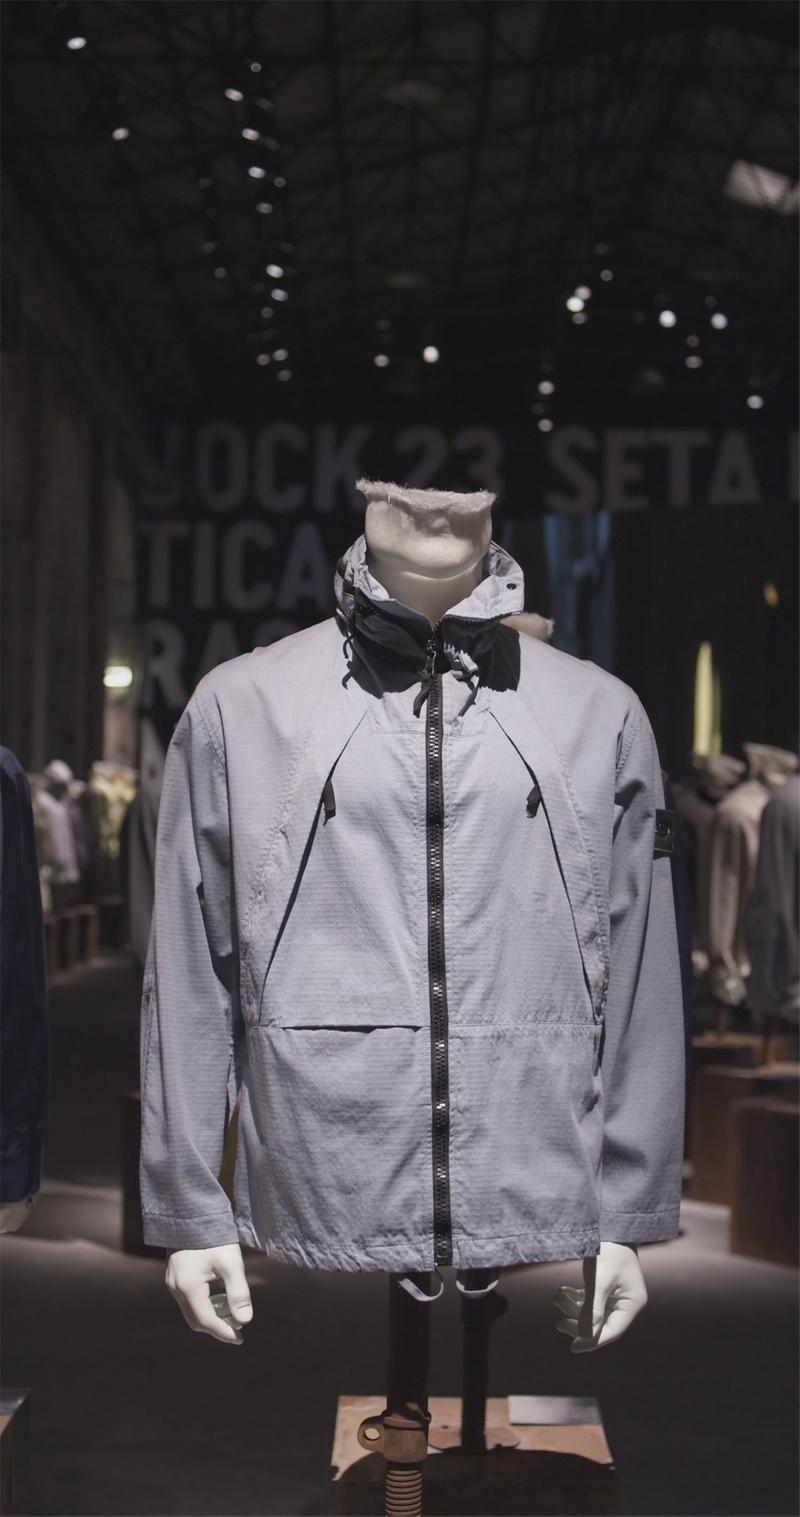 Gray zippered jacket with high collar and diagonal chest pockets with zipper closure, displayed on mannequin bust